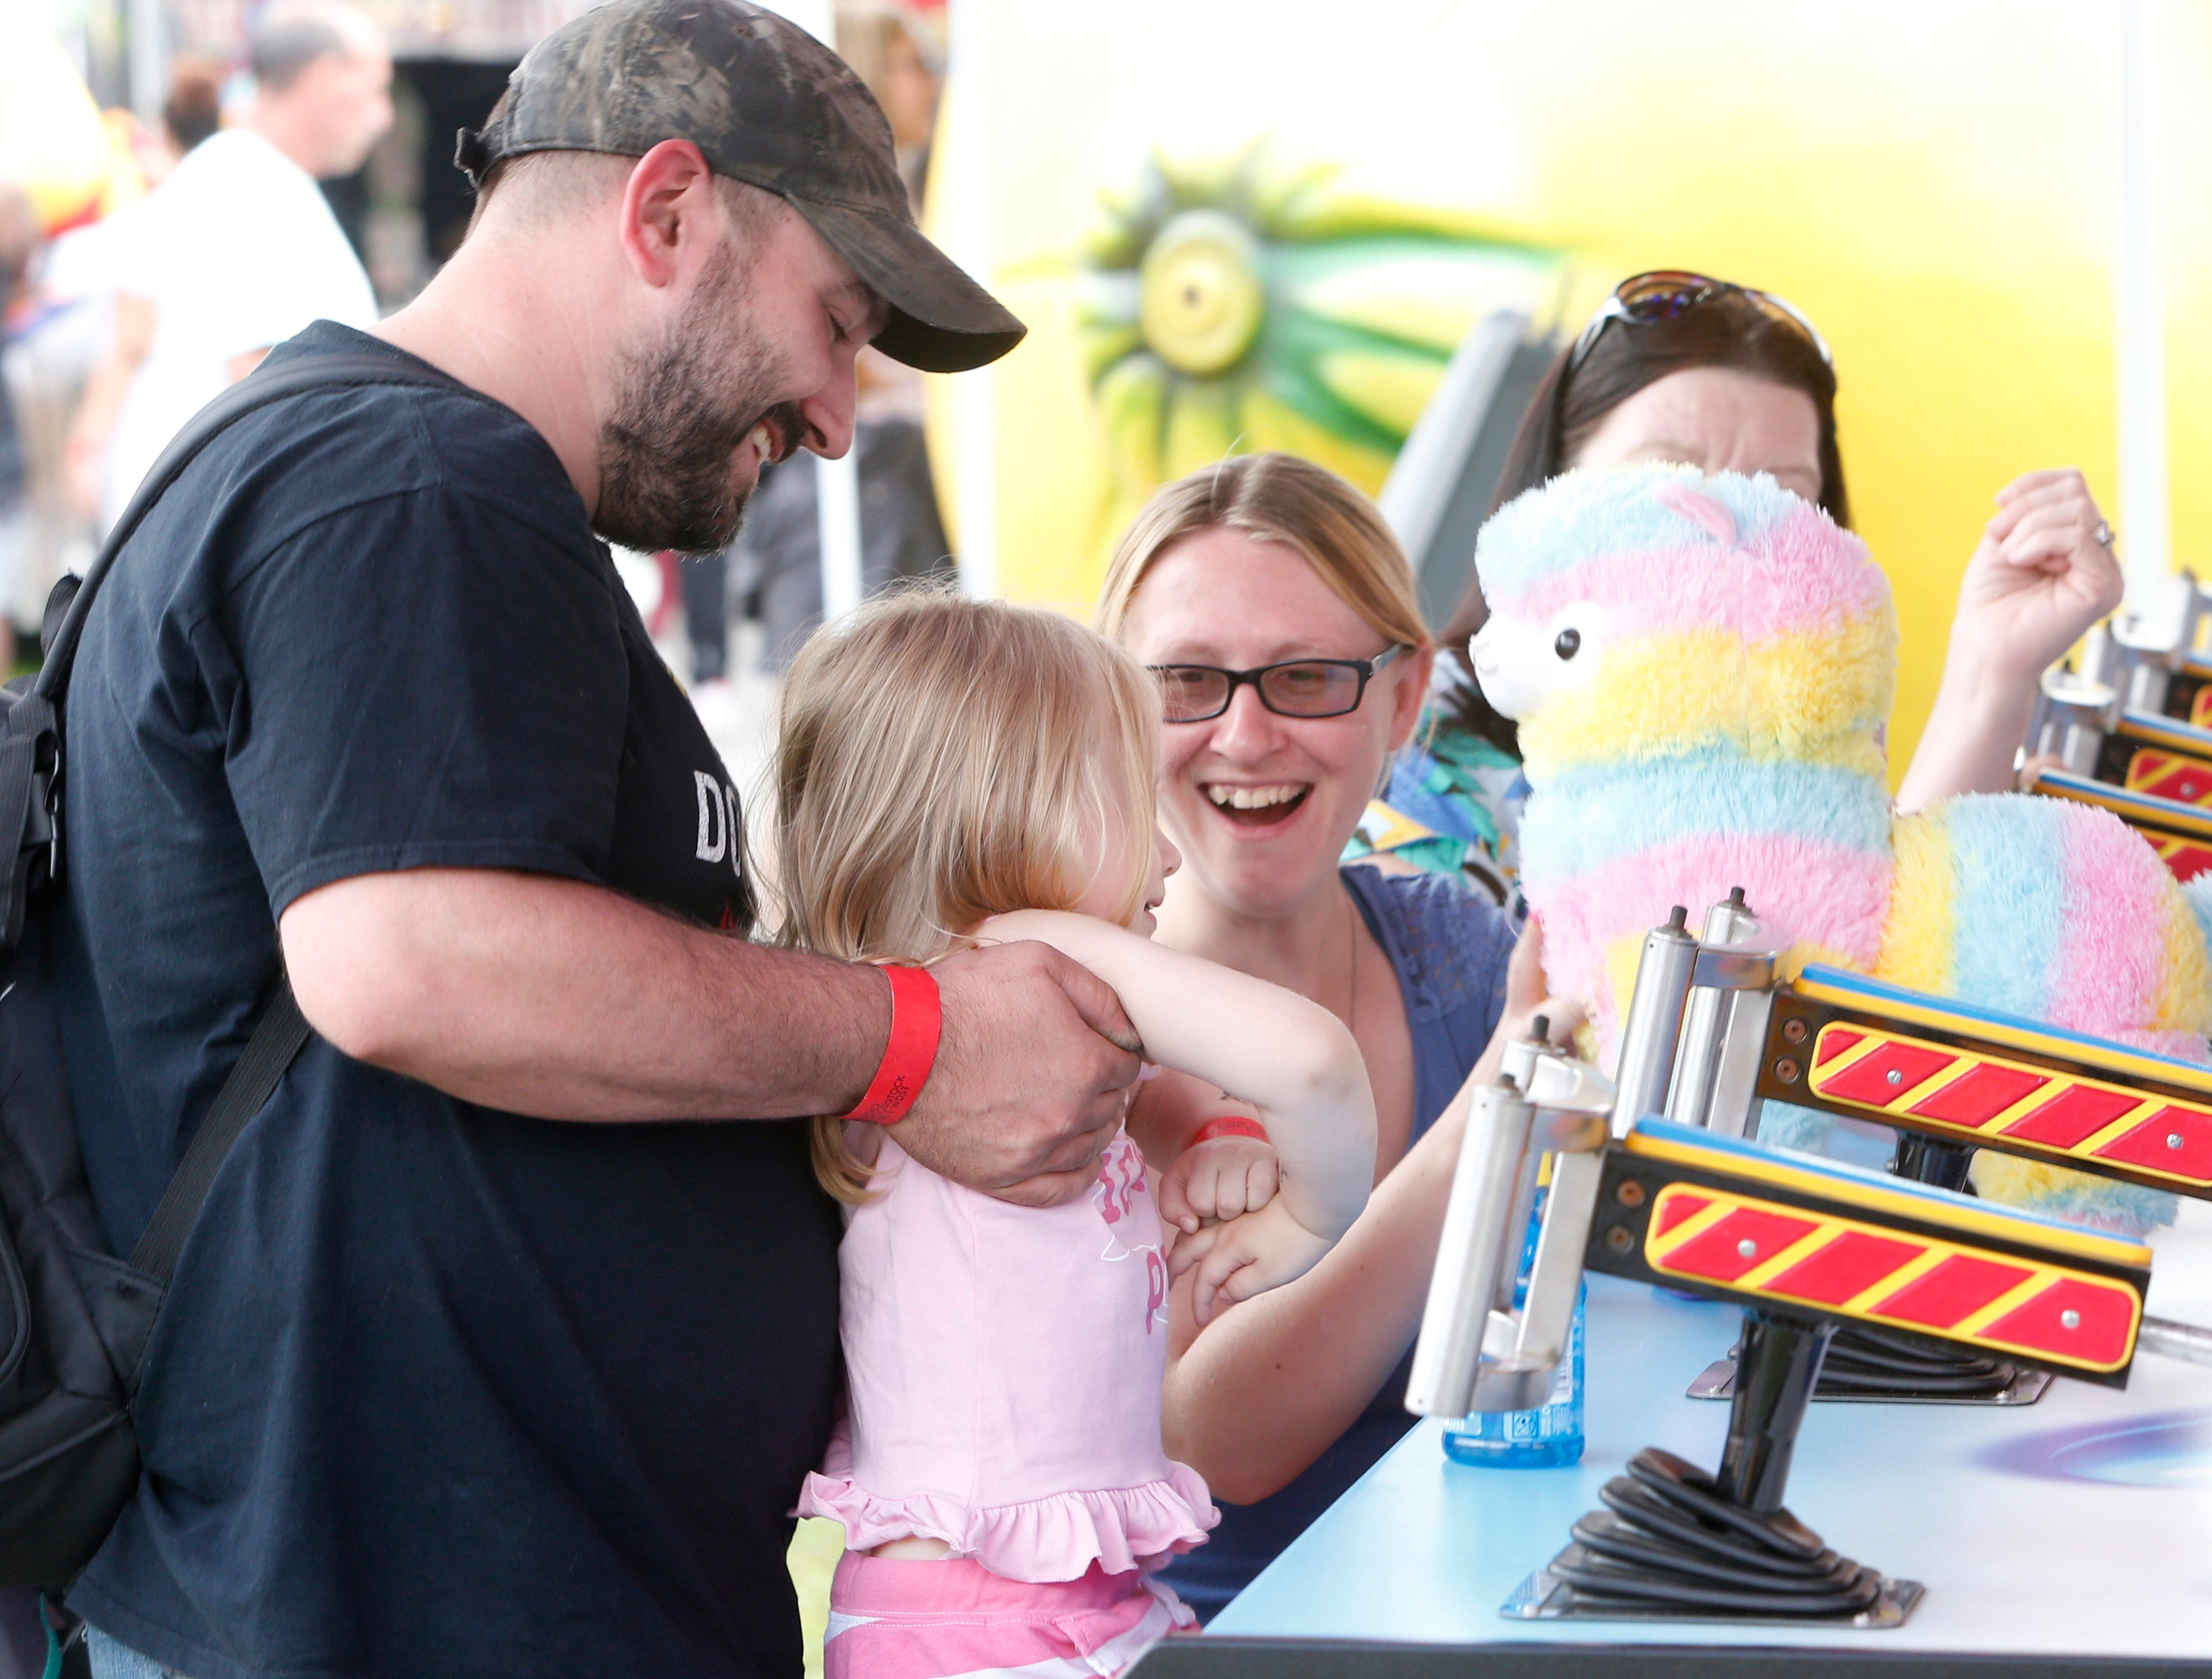 Chaz Coddington holds his daughter, Alana, as wife, Faith, cheers her for winning a prize during the opening day at the Ulster County Fair in New Paltz on July 31, 2018.